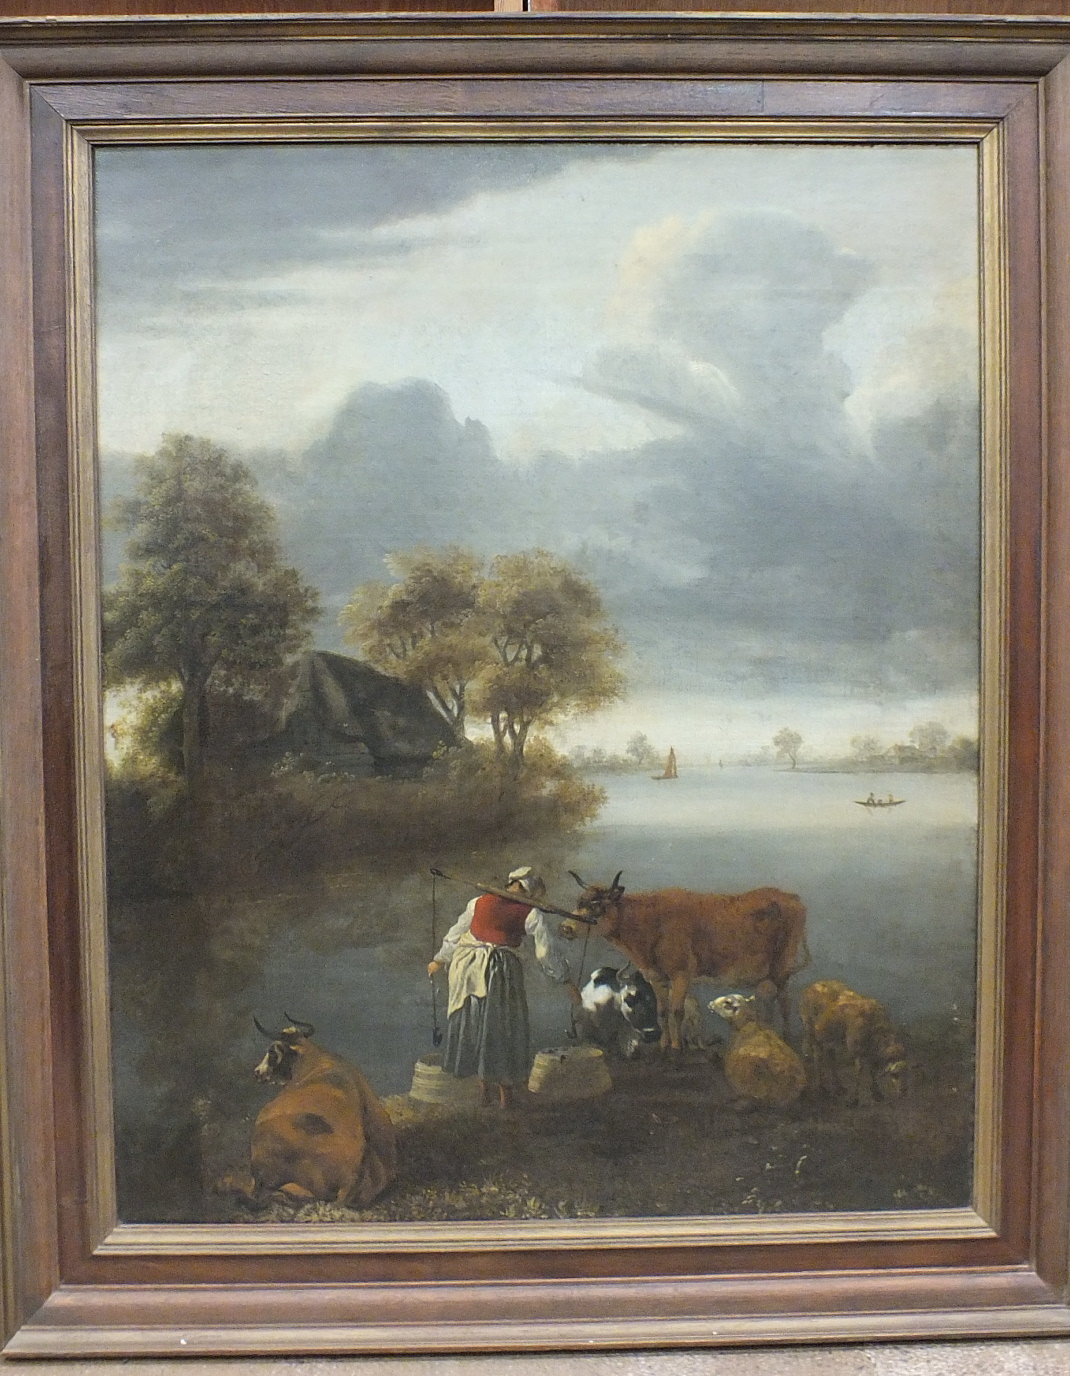 Lot 3 - 19th century Continental School A MILKMAID, CATTLE AND SHEEP BY A LAKE Unsigned oil on canvas, 80